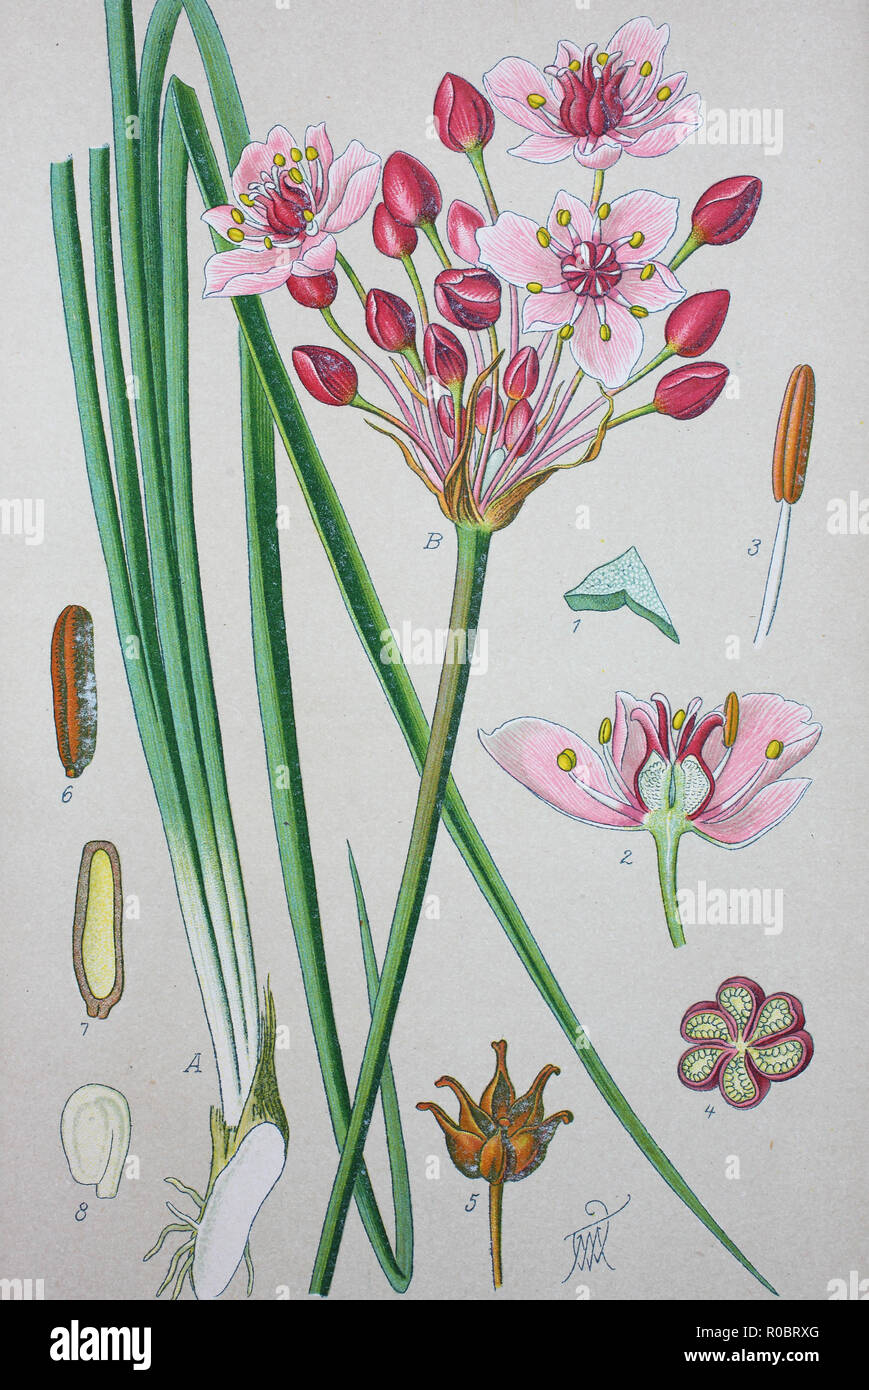 Digital improved high quality reproduction: Butomus umbellatus is the Old World Palearctic and Asian plant species in the family Butomaceae. Common names include flowering rush or grass rush - Stock Image